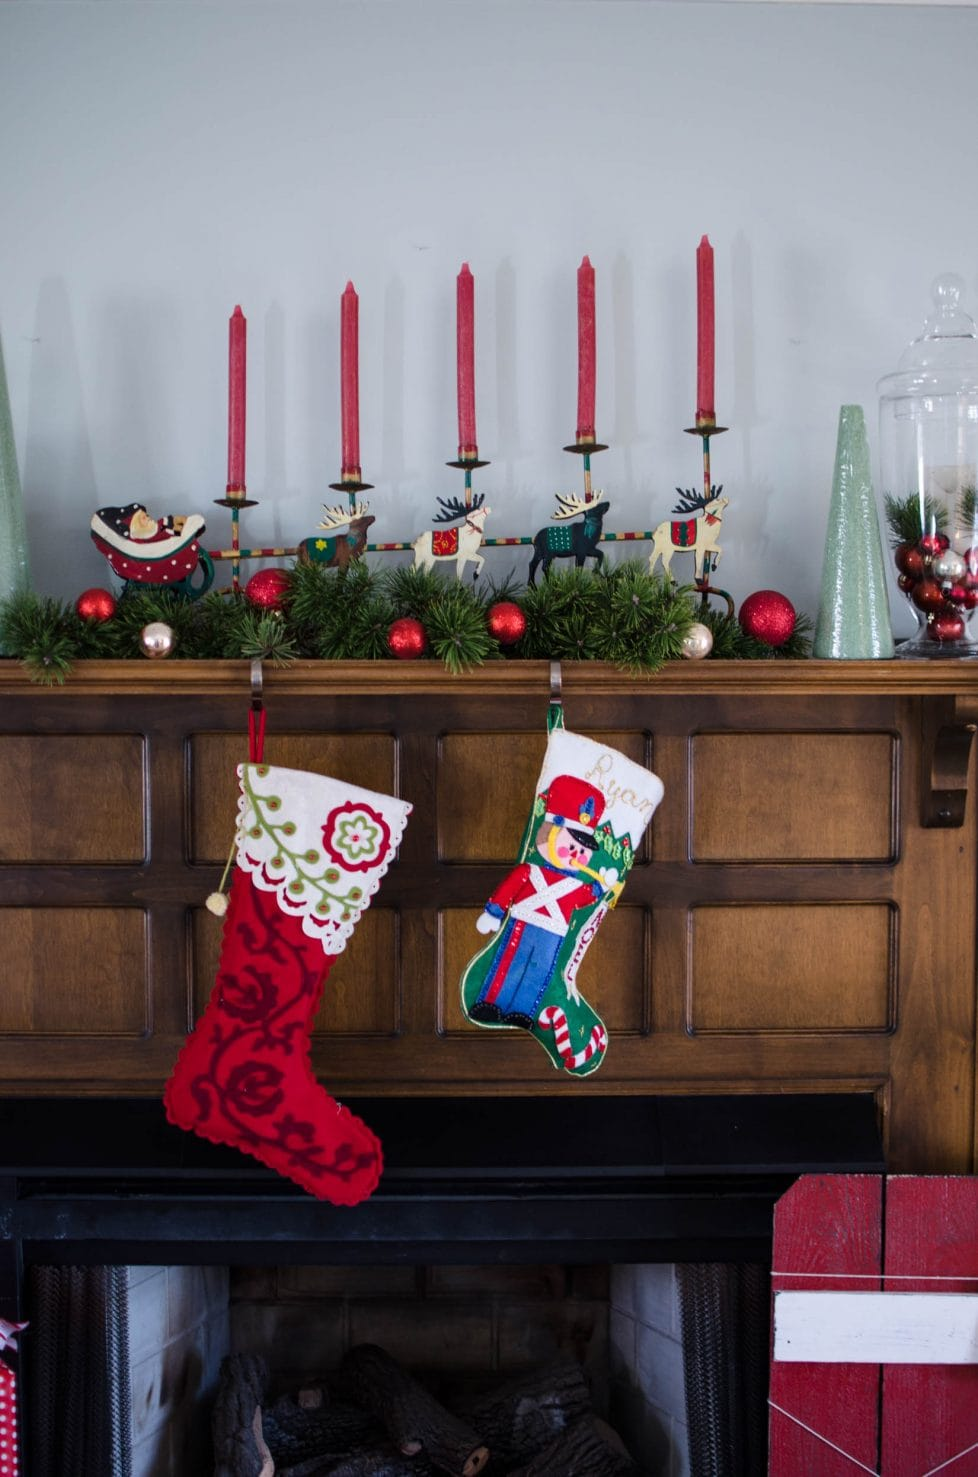 This is a collection of home decor photos that showcases my favorite scenes from my house at Christmastime!